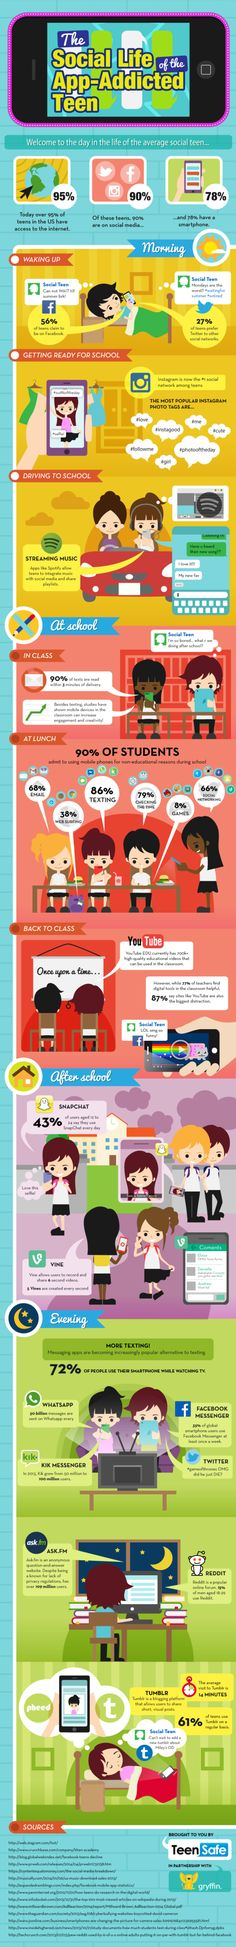 How Are Teens Using Social Media? #Infographic